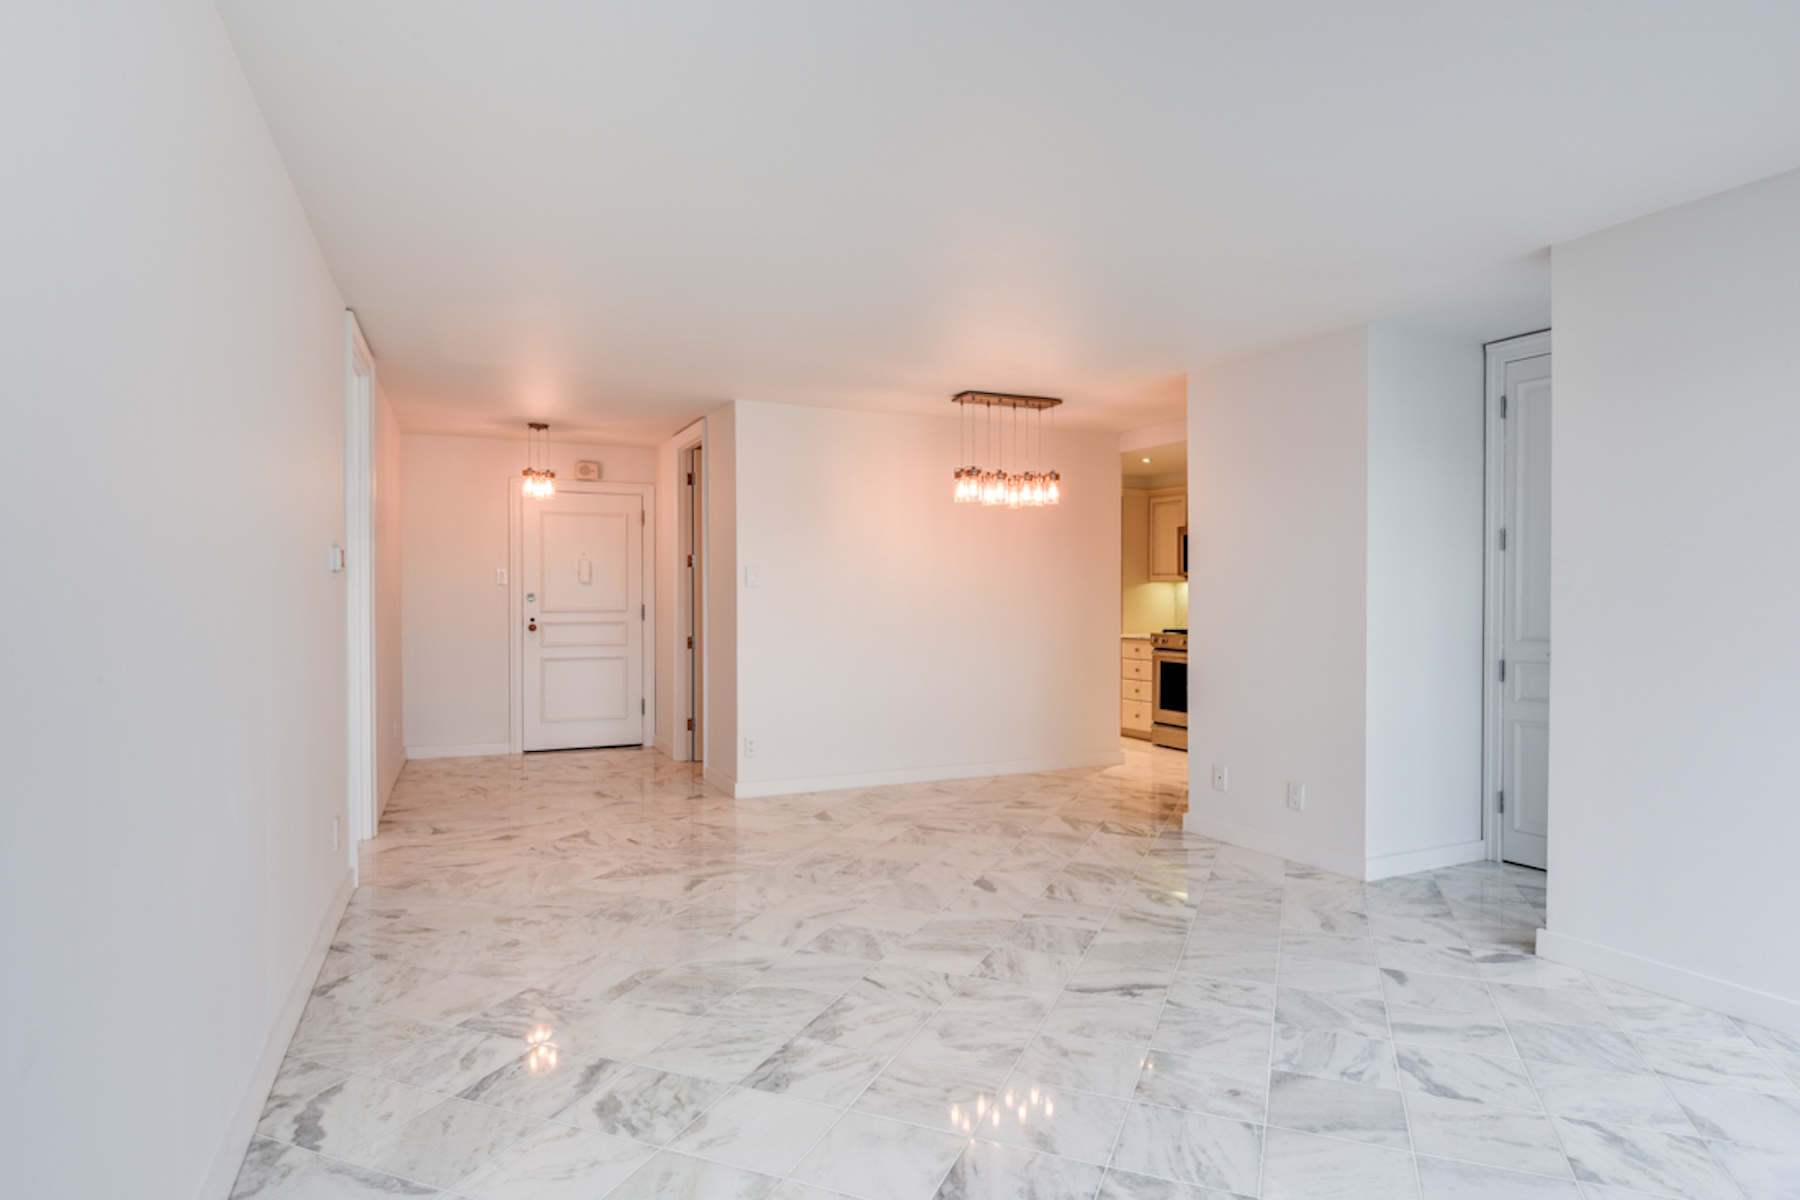 Additional photo for property listing at Foggy Bottom 2500 Virginia Avenue Nw 1005-SOUTH Washington, Περιφερεια Τησ Κολουμπια 20037 Ηνωμενεσ Πολιτειεσ